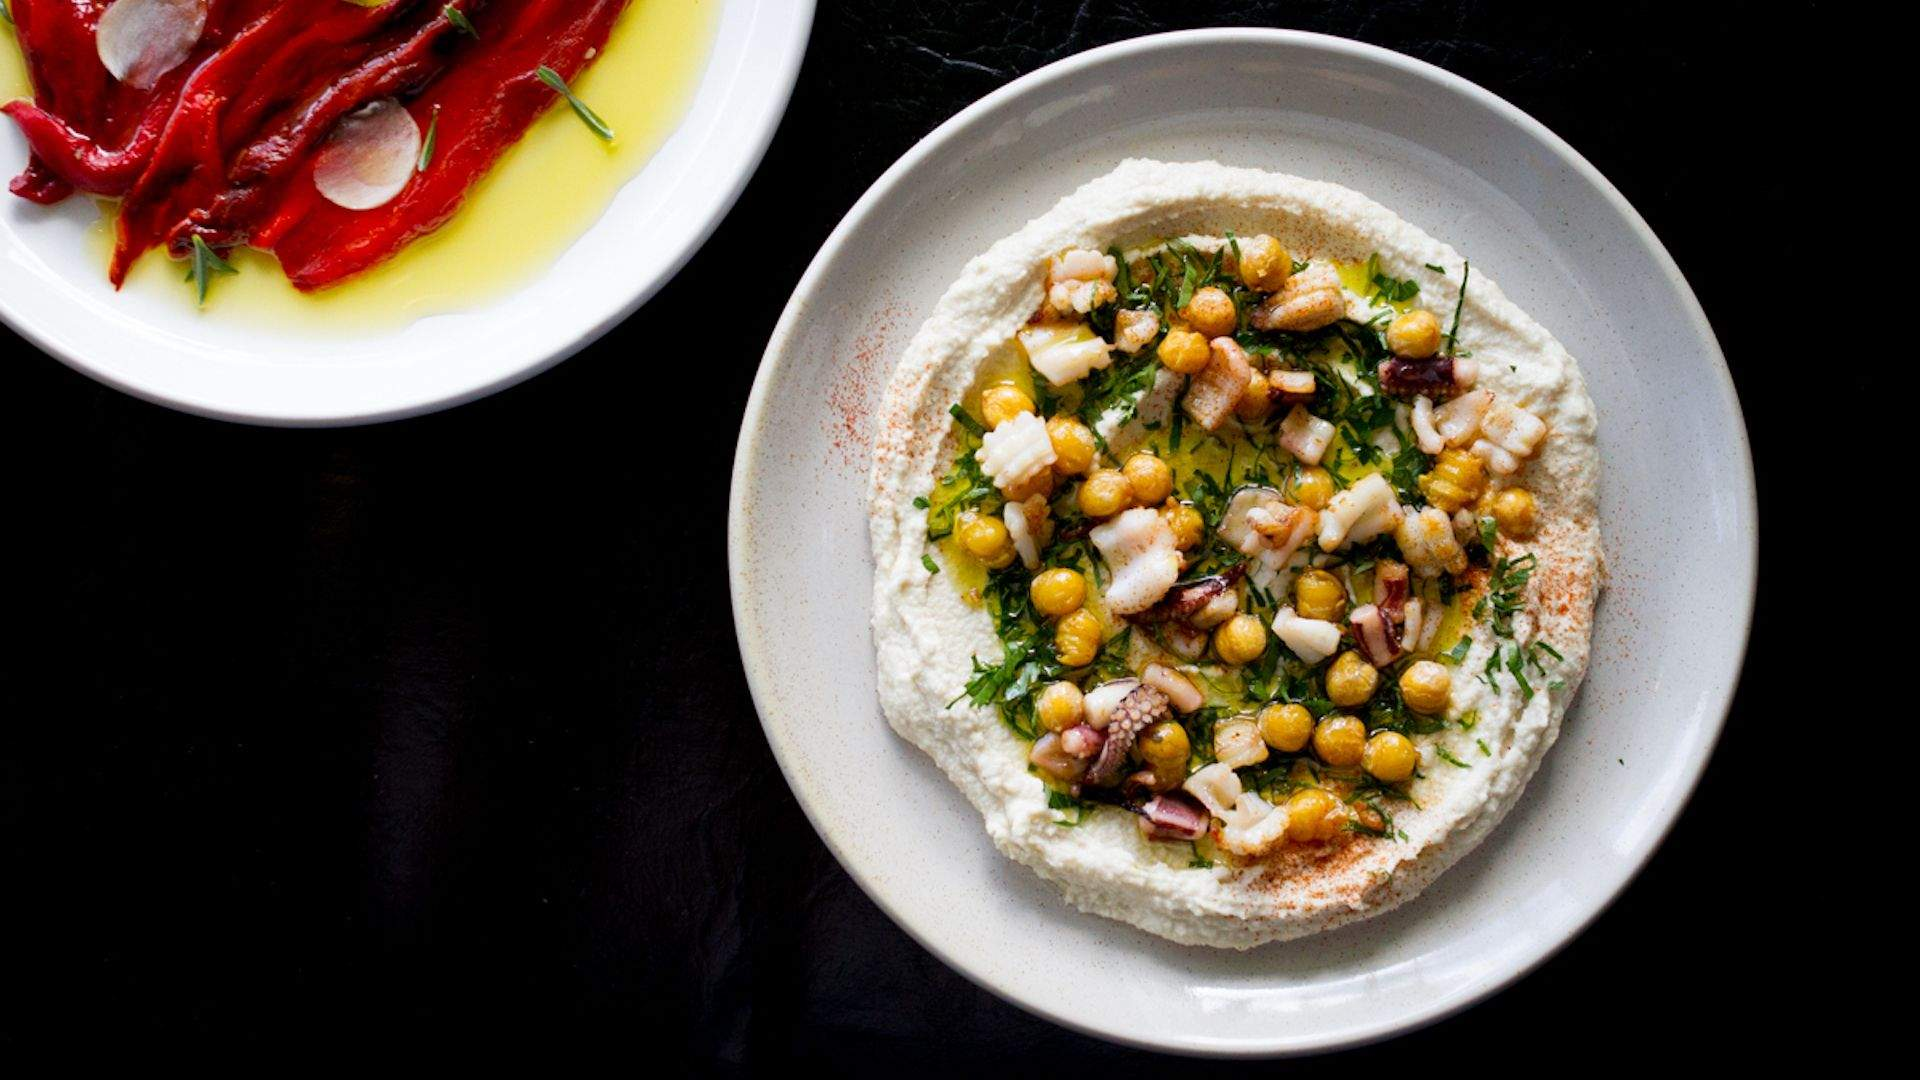 Bar Saracen Is Selling Tubs of Its Signature Hummus to Raise Relief Funds for Beirut